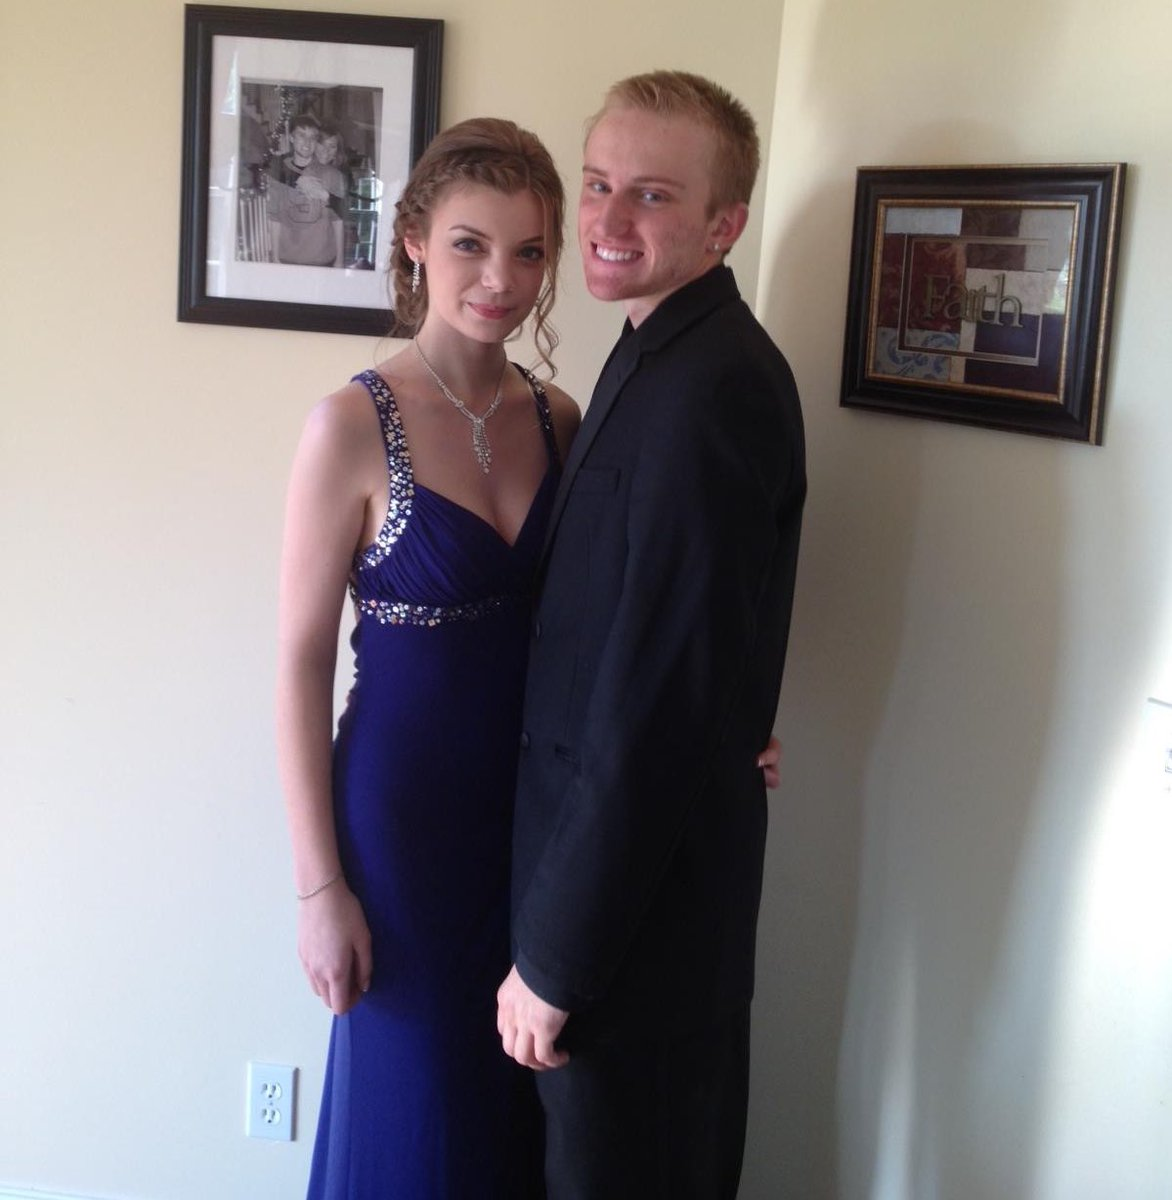 Found this gem from my prom pic.twitter.com/xaqcl90sIt